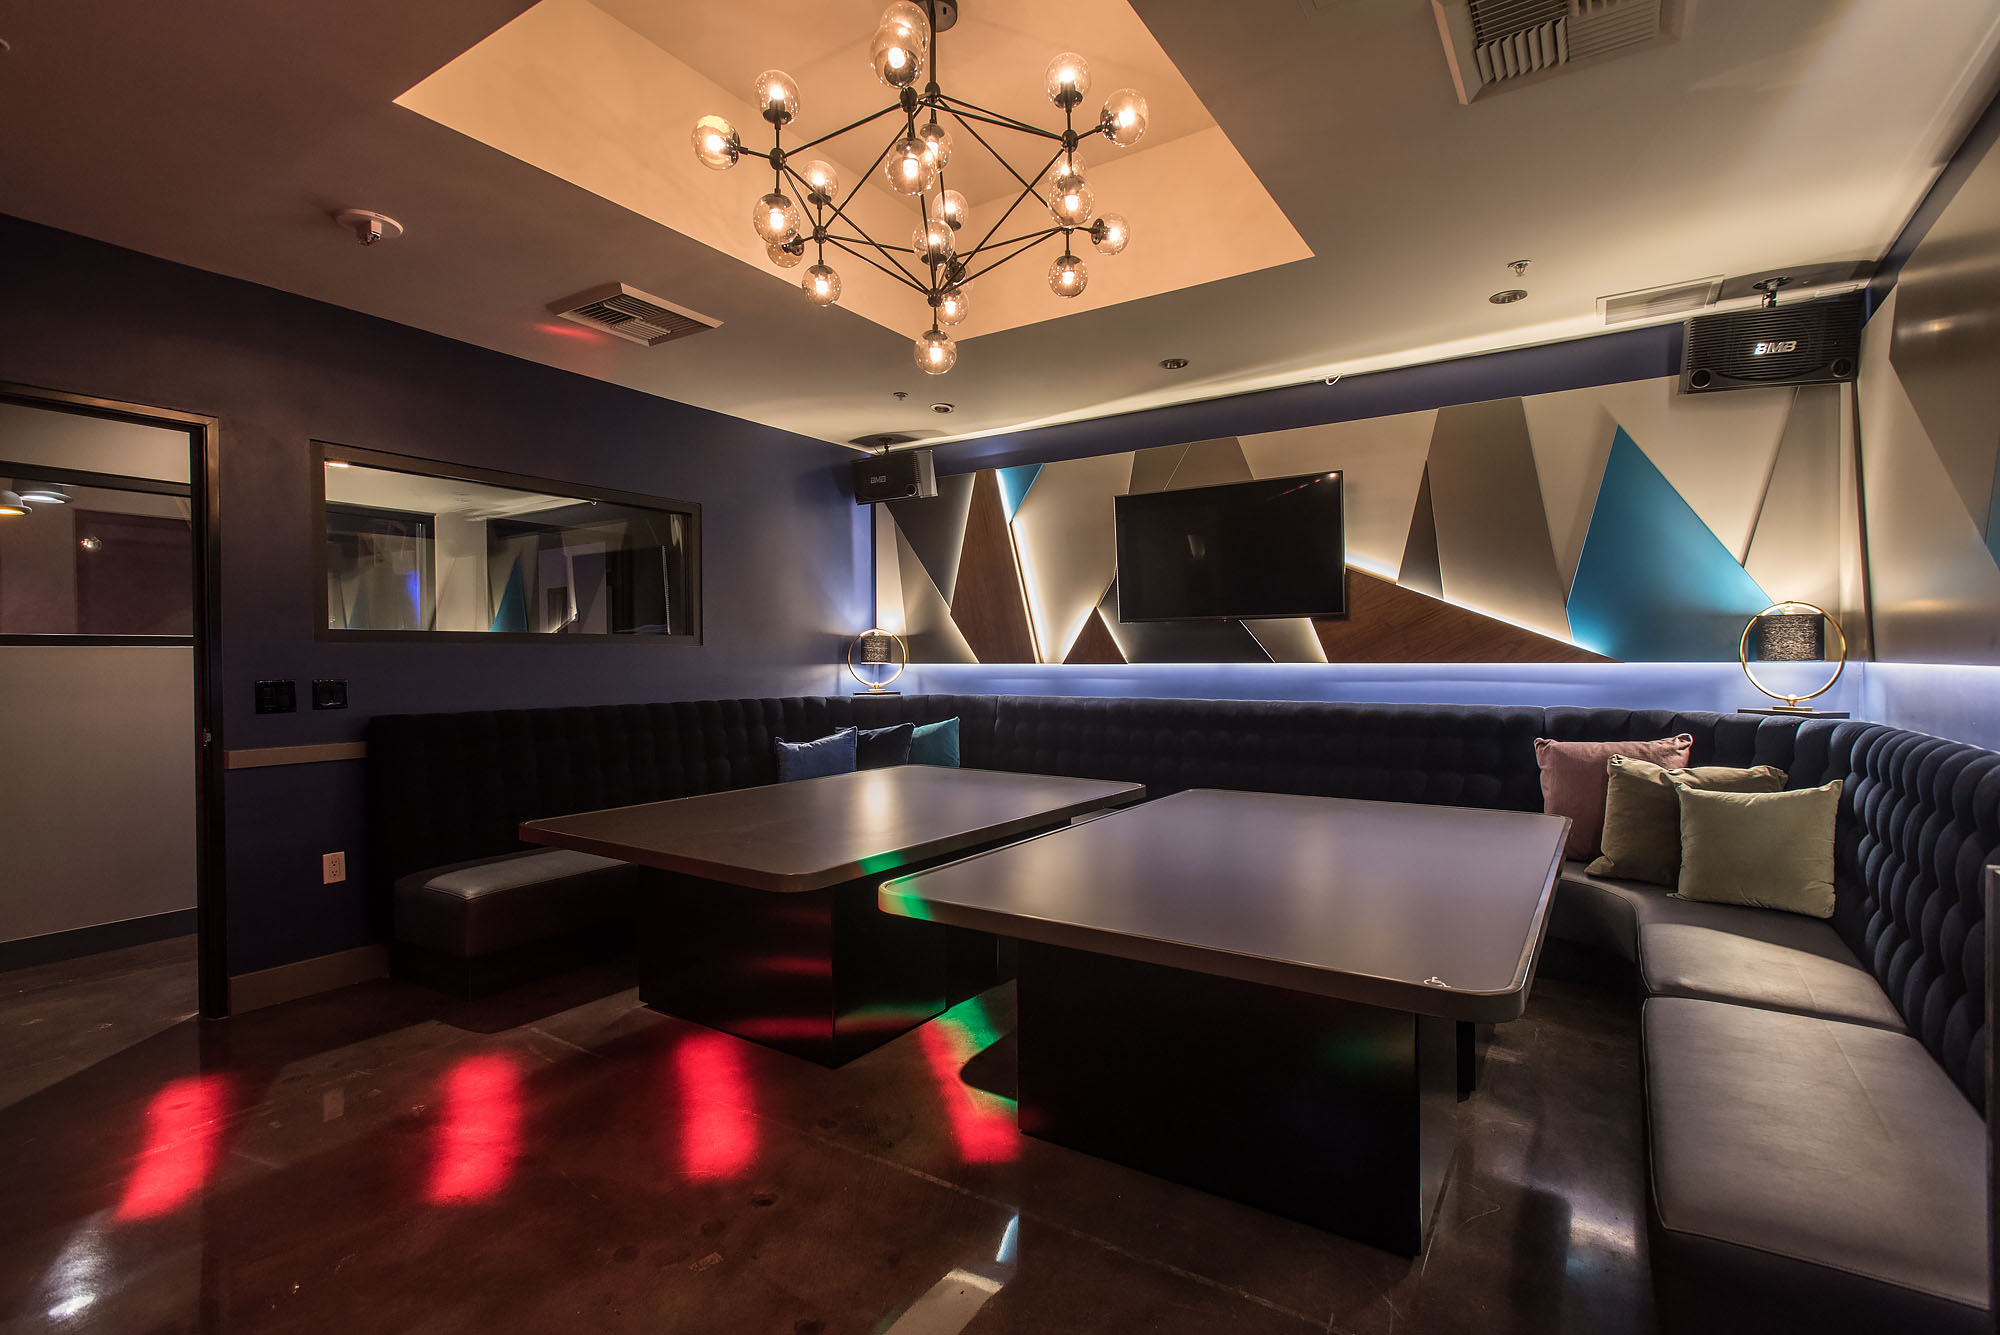 Revel in The Venue, Koreatown's Hippest Hidden Party Palace